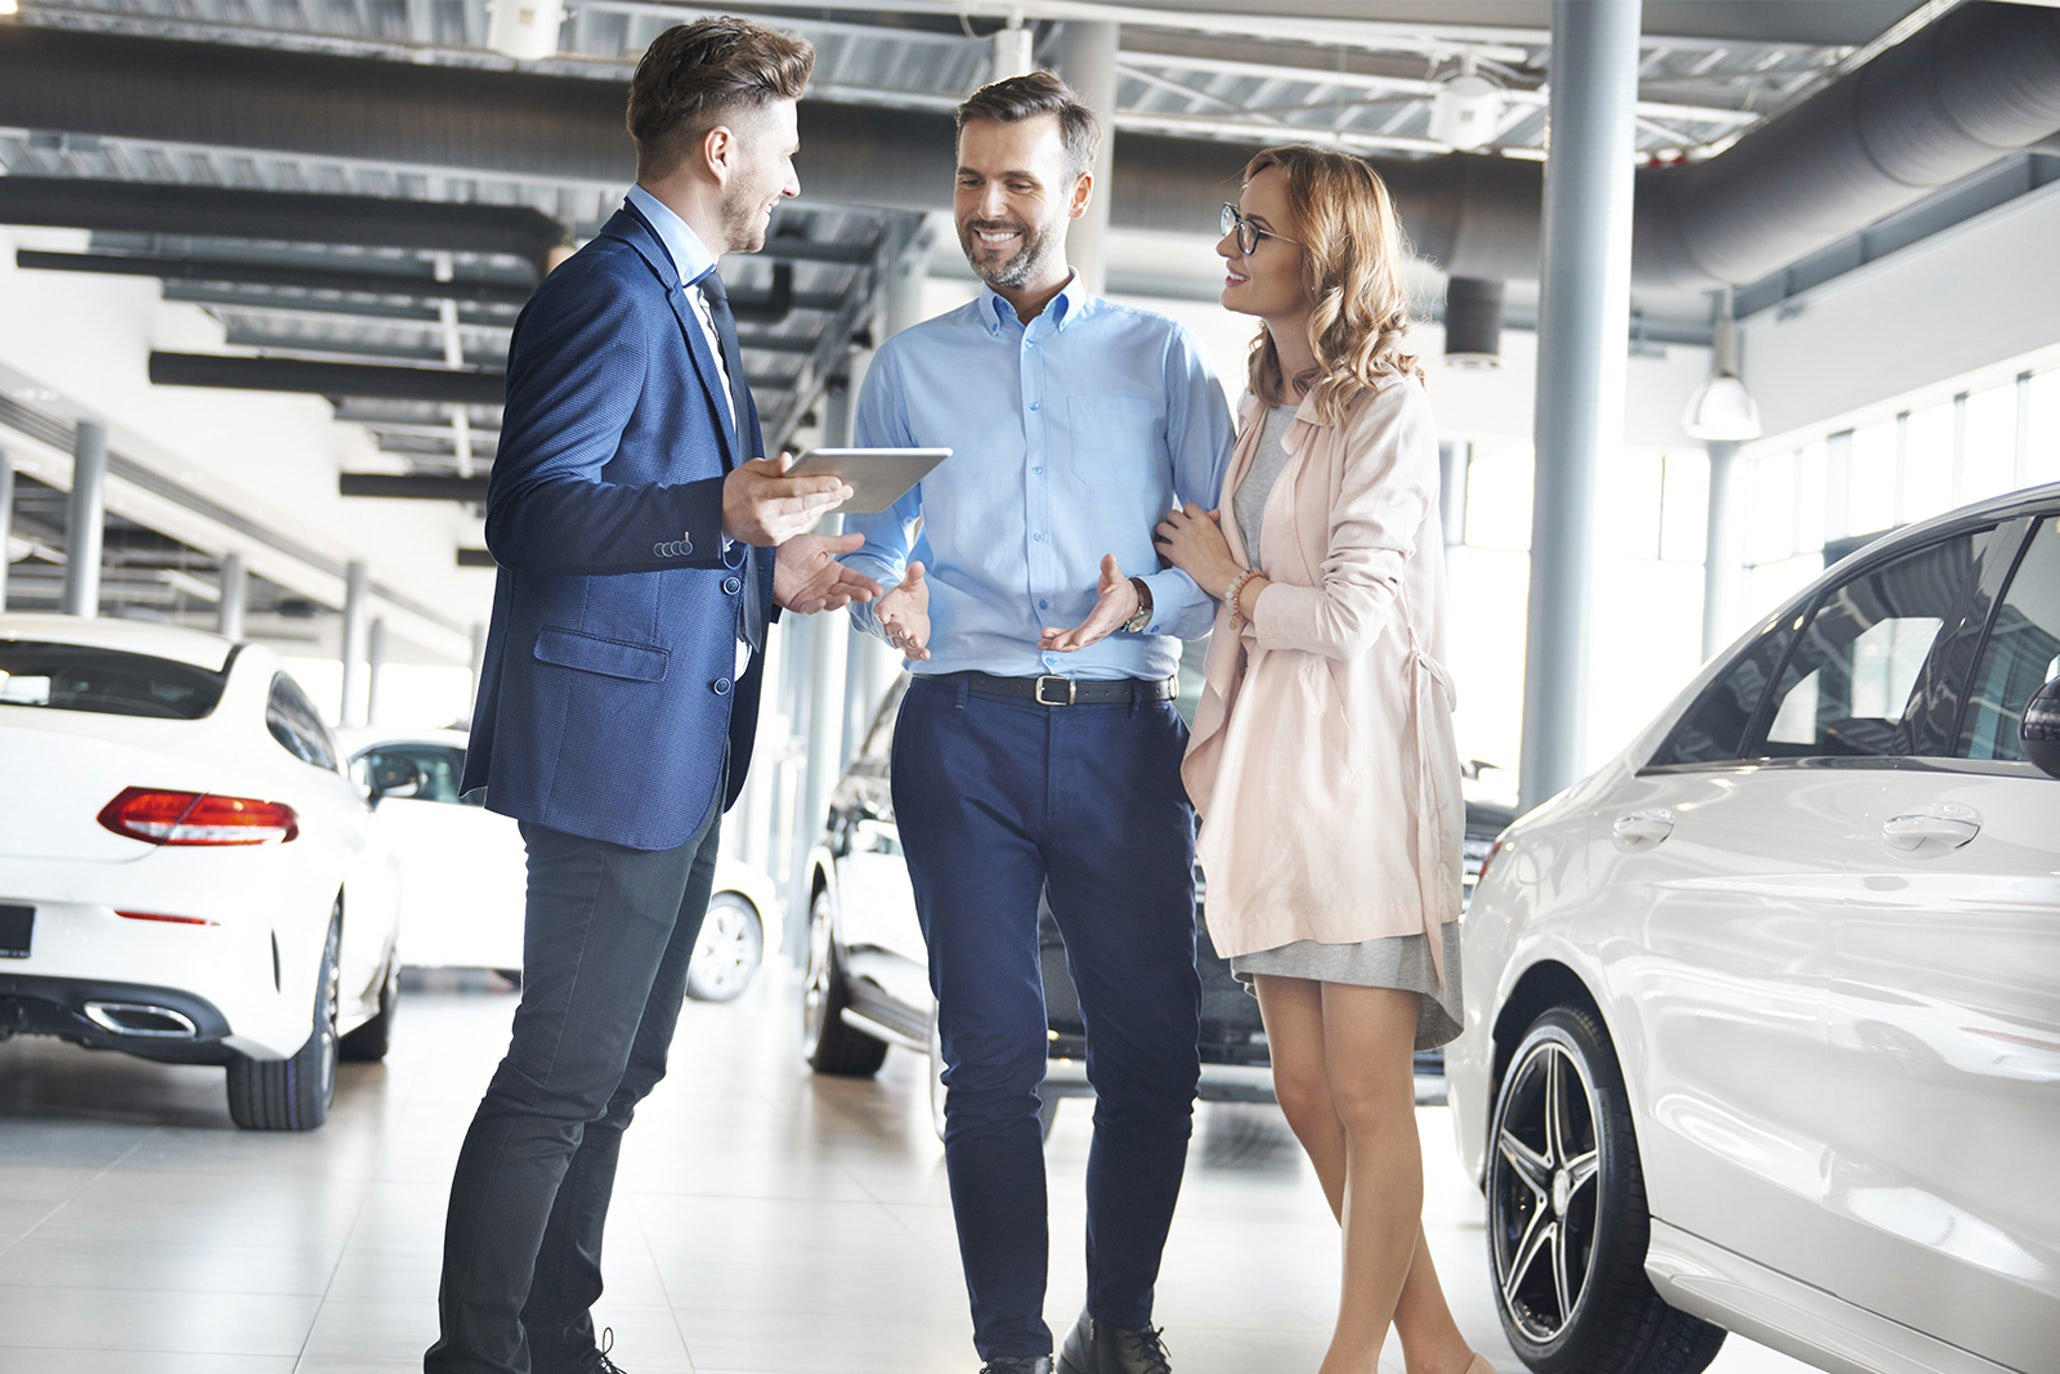 A few tips for getting the best car deal online